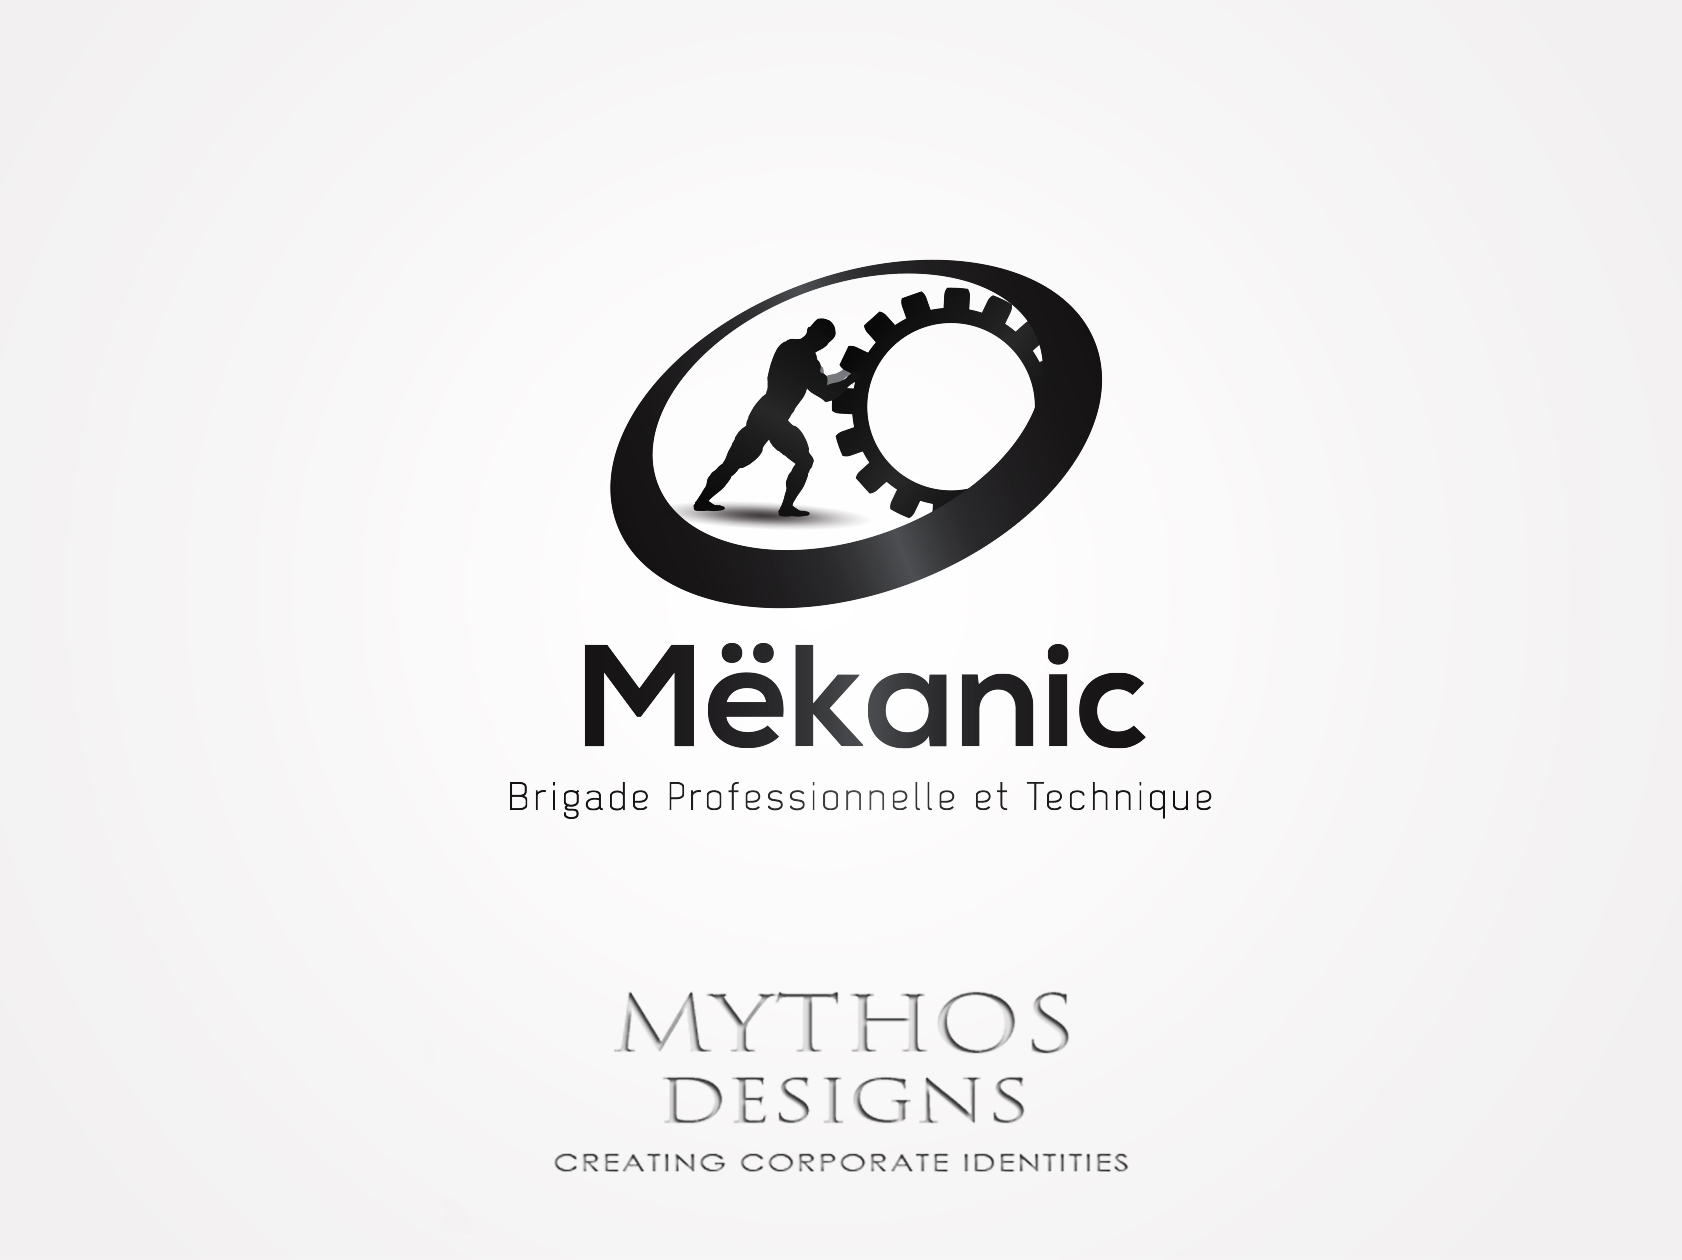 Logo Design by Mythos Designs - Entry No. 206 in the Logo Design Contest Creative Logo Design for MËKANIC - Professional and technical squad.